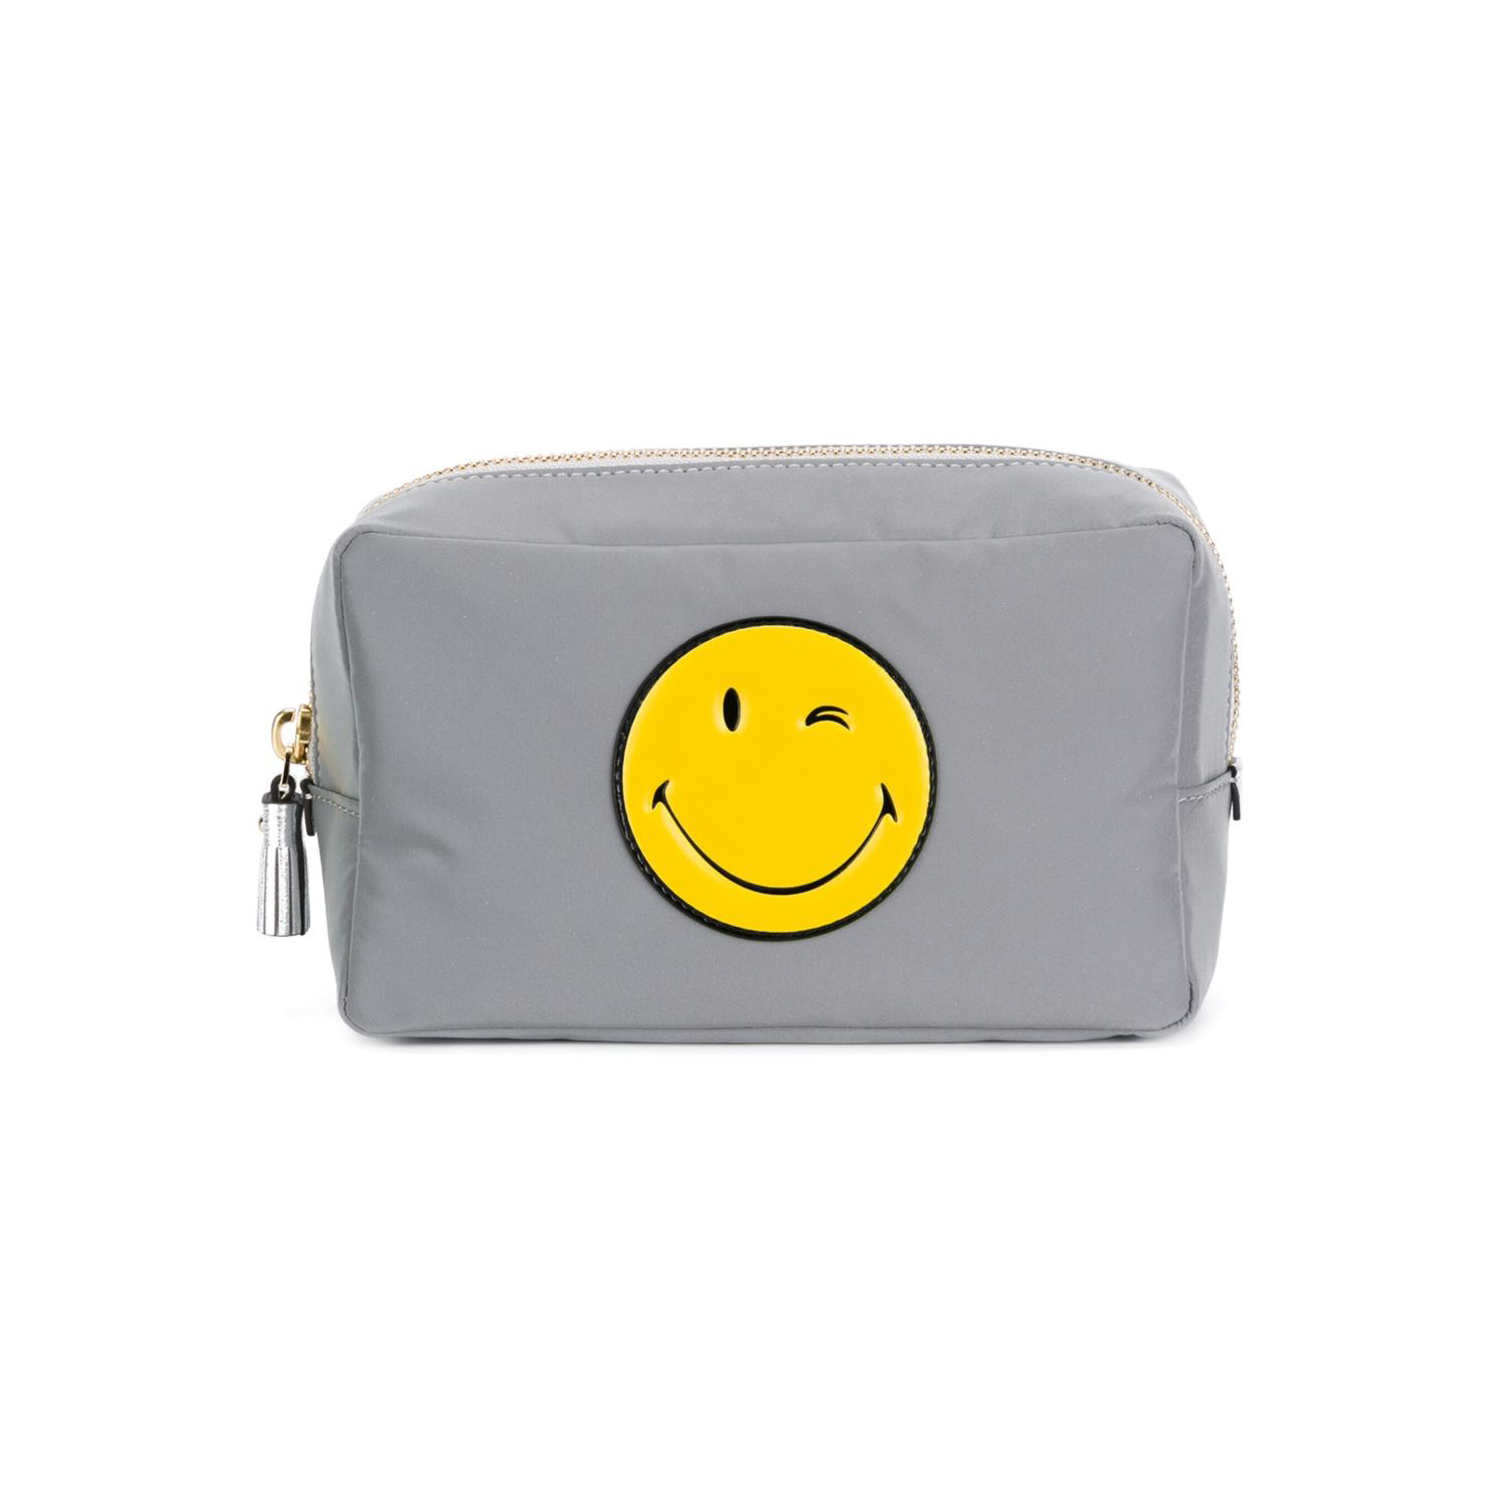 ANYA HINDMARCH Wink Beauty Case